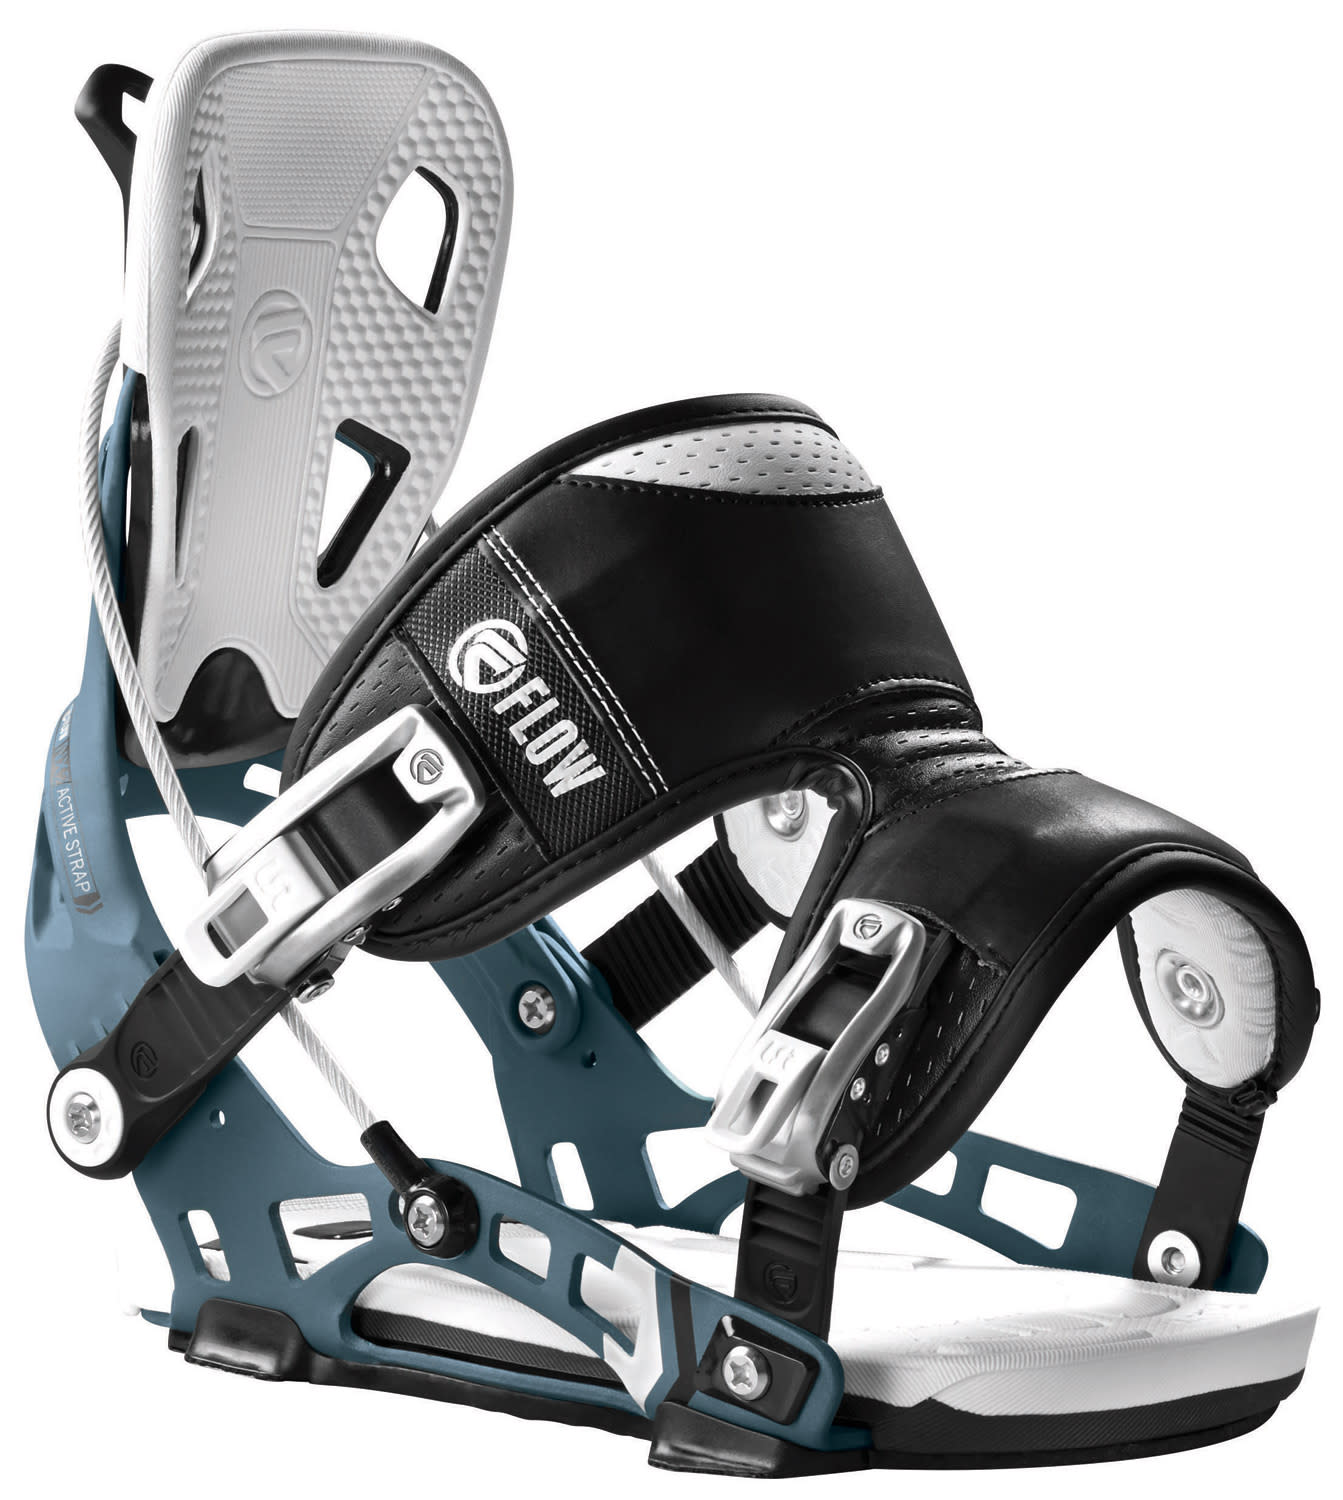 Flow NX2 Snowboard Bindings